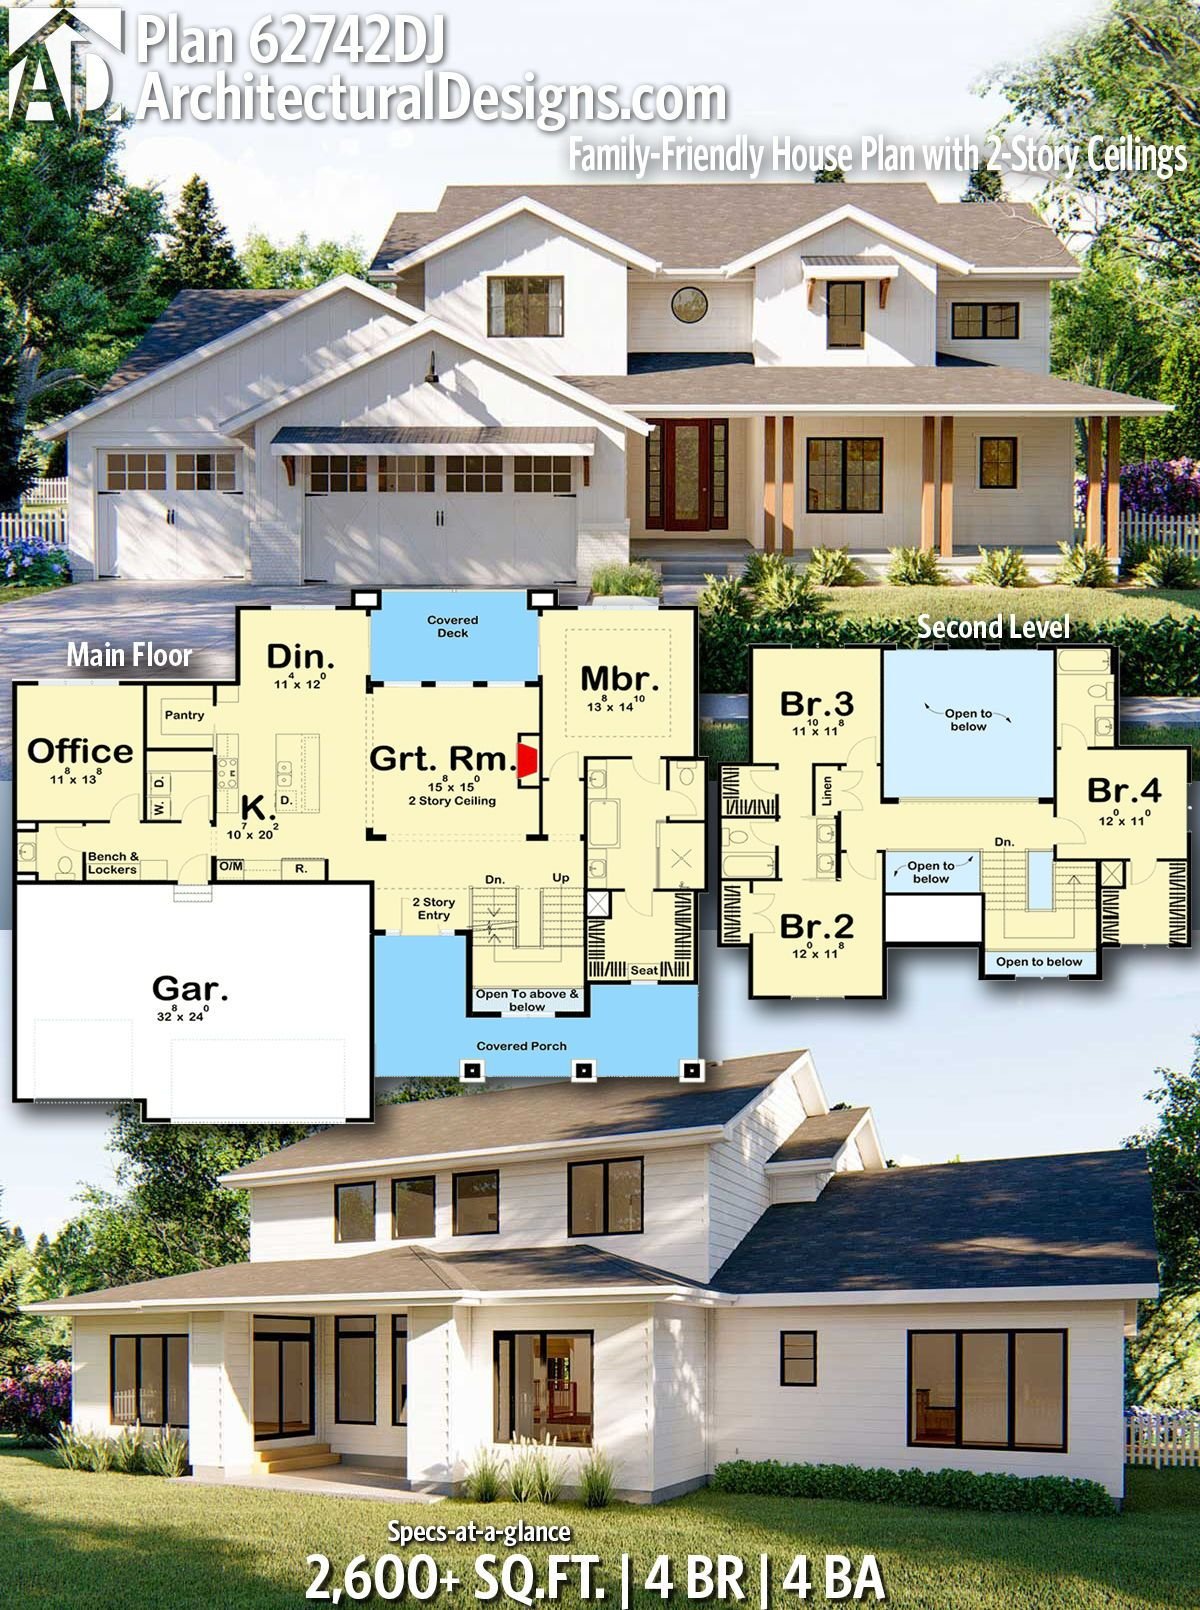 Plan 62742dj Family Friendly House Plan With 2 Story Ceilings House Plans House Design Architecture Design